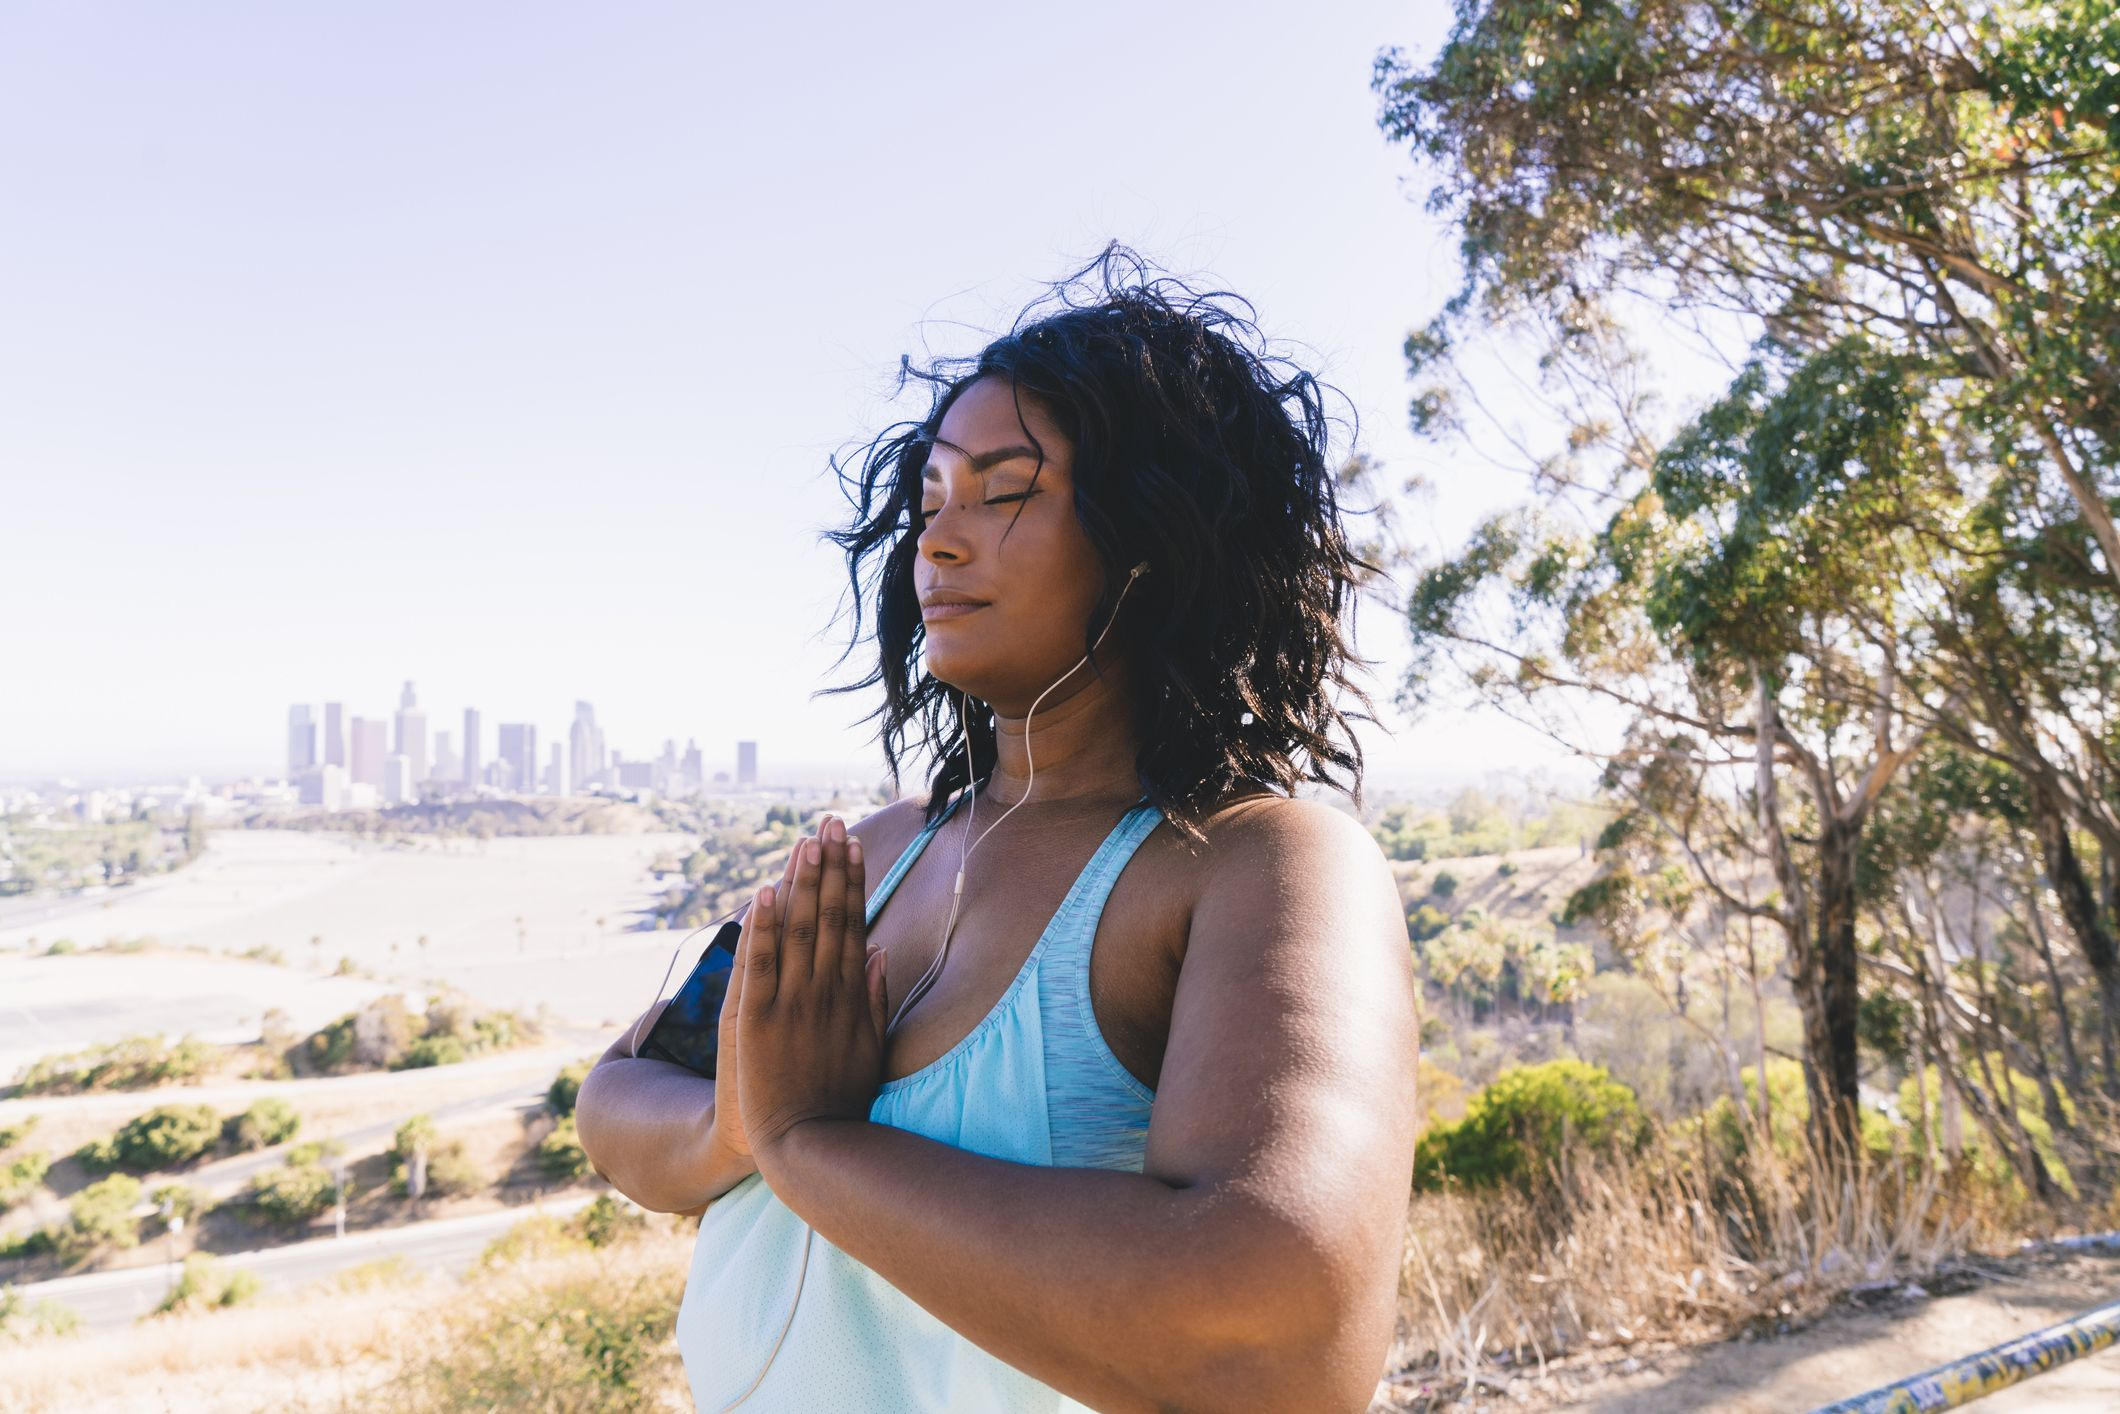 Woman with eyes closed doing prayer position exercise against clear sky